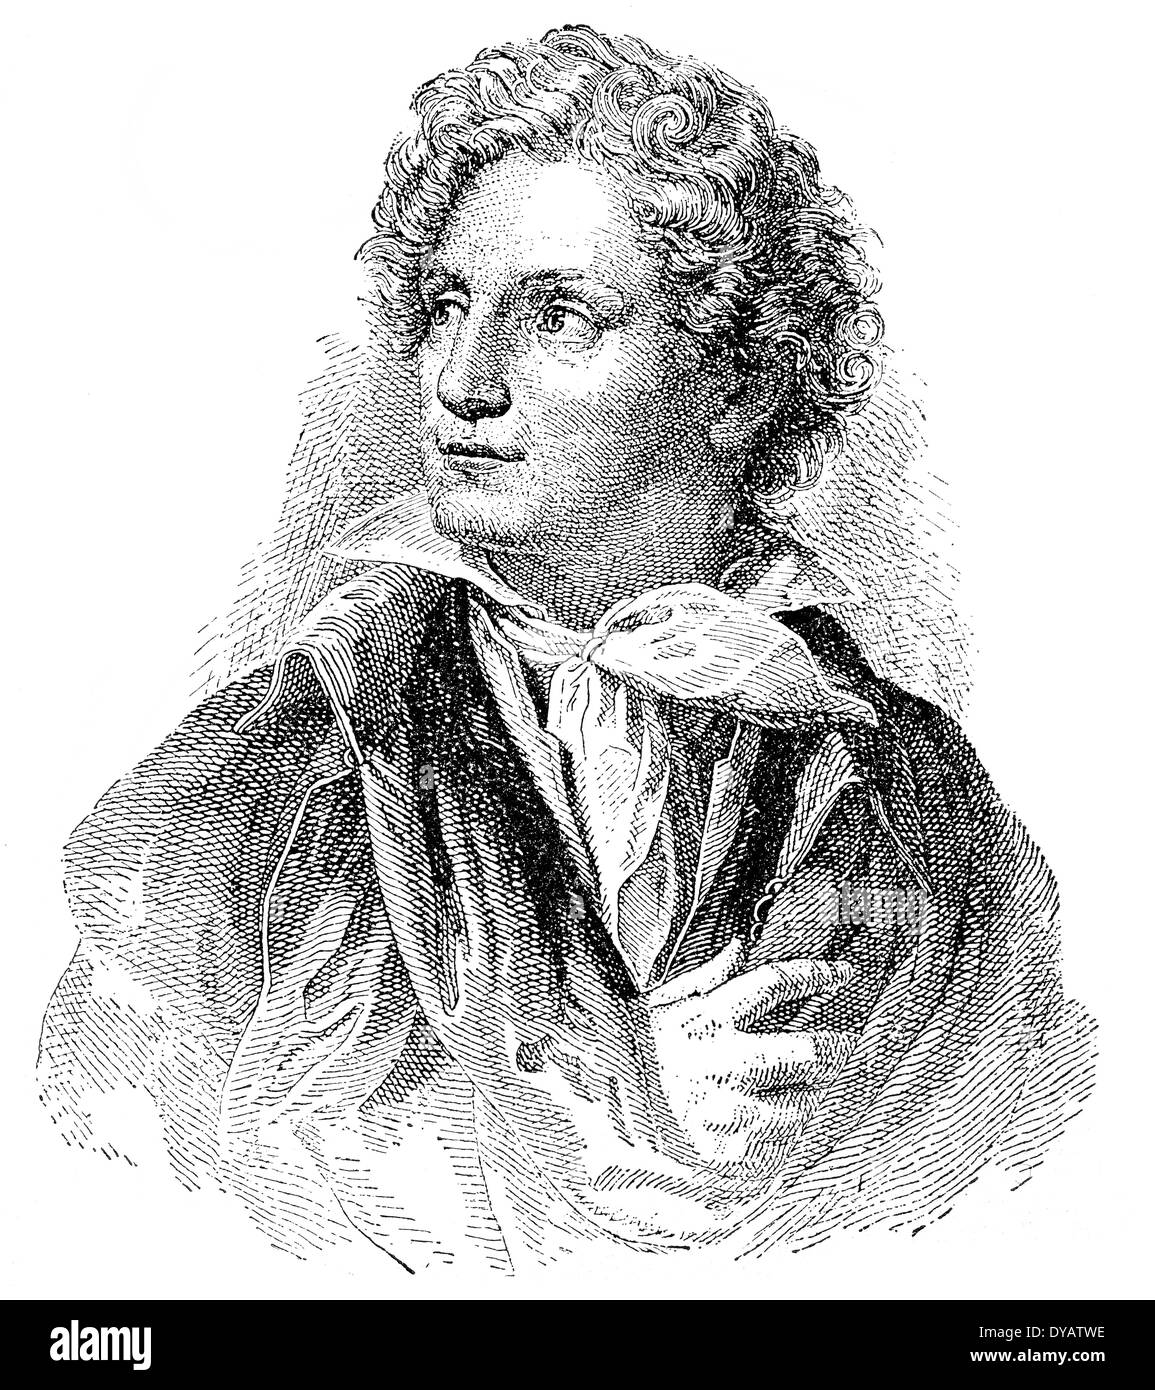 Ferdinand Raimund or Ferdinand Jakob Raimann; 1790 - 1836, an Austrian actor and dramatist, - Stock Image